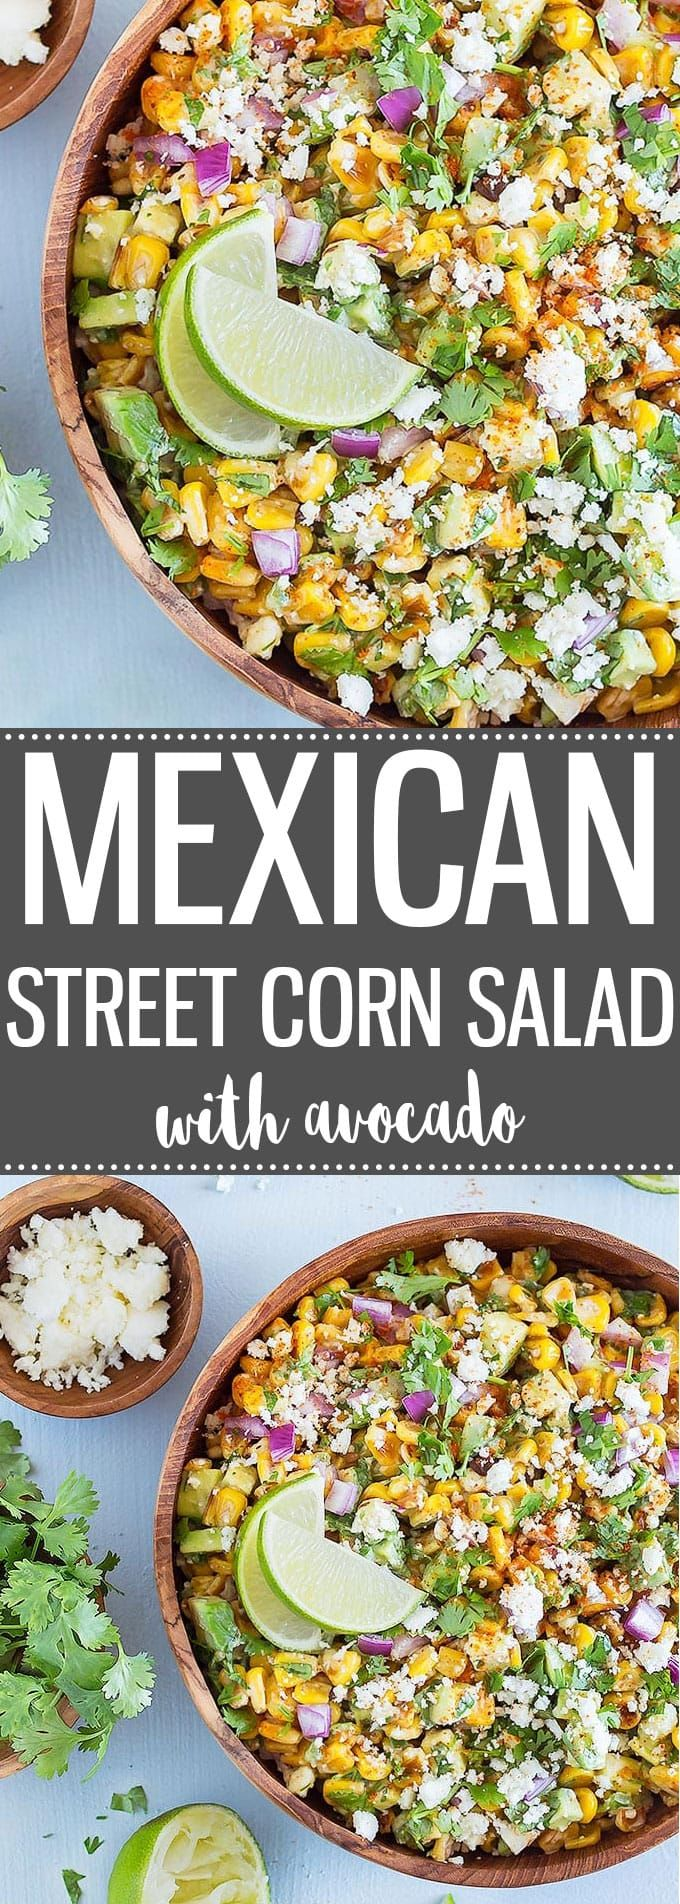 Mexican Street Corn Salad with Avocado is always a crowd-pleaser! It's fast and easy to prepare, and has a tasty balance of fresh flavors and textures. With Cinco de Mayo just around the corner, this